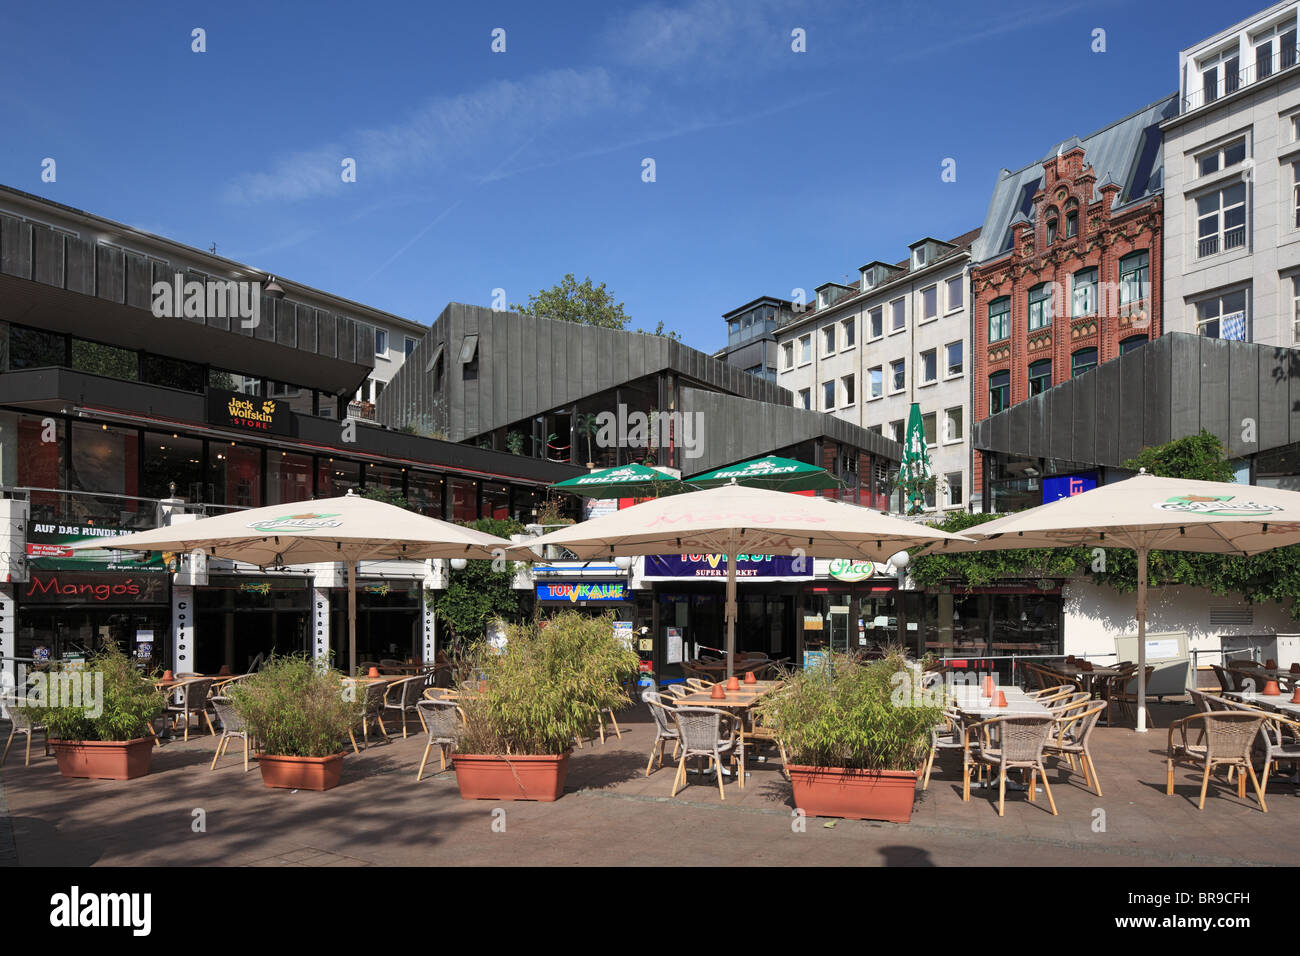 buergerhaeuser und strassenrestaurant am alter markt in kiel kieler stock photo royalty free. Black Bedroom Furniture Sets. Home Design Ideas